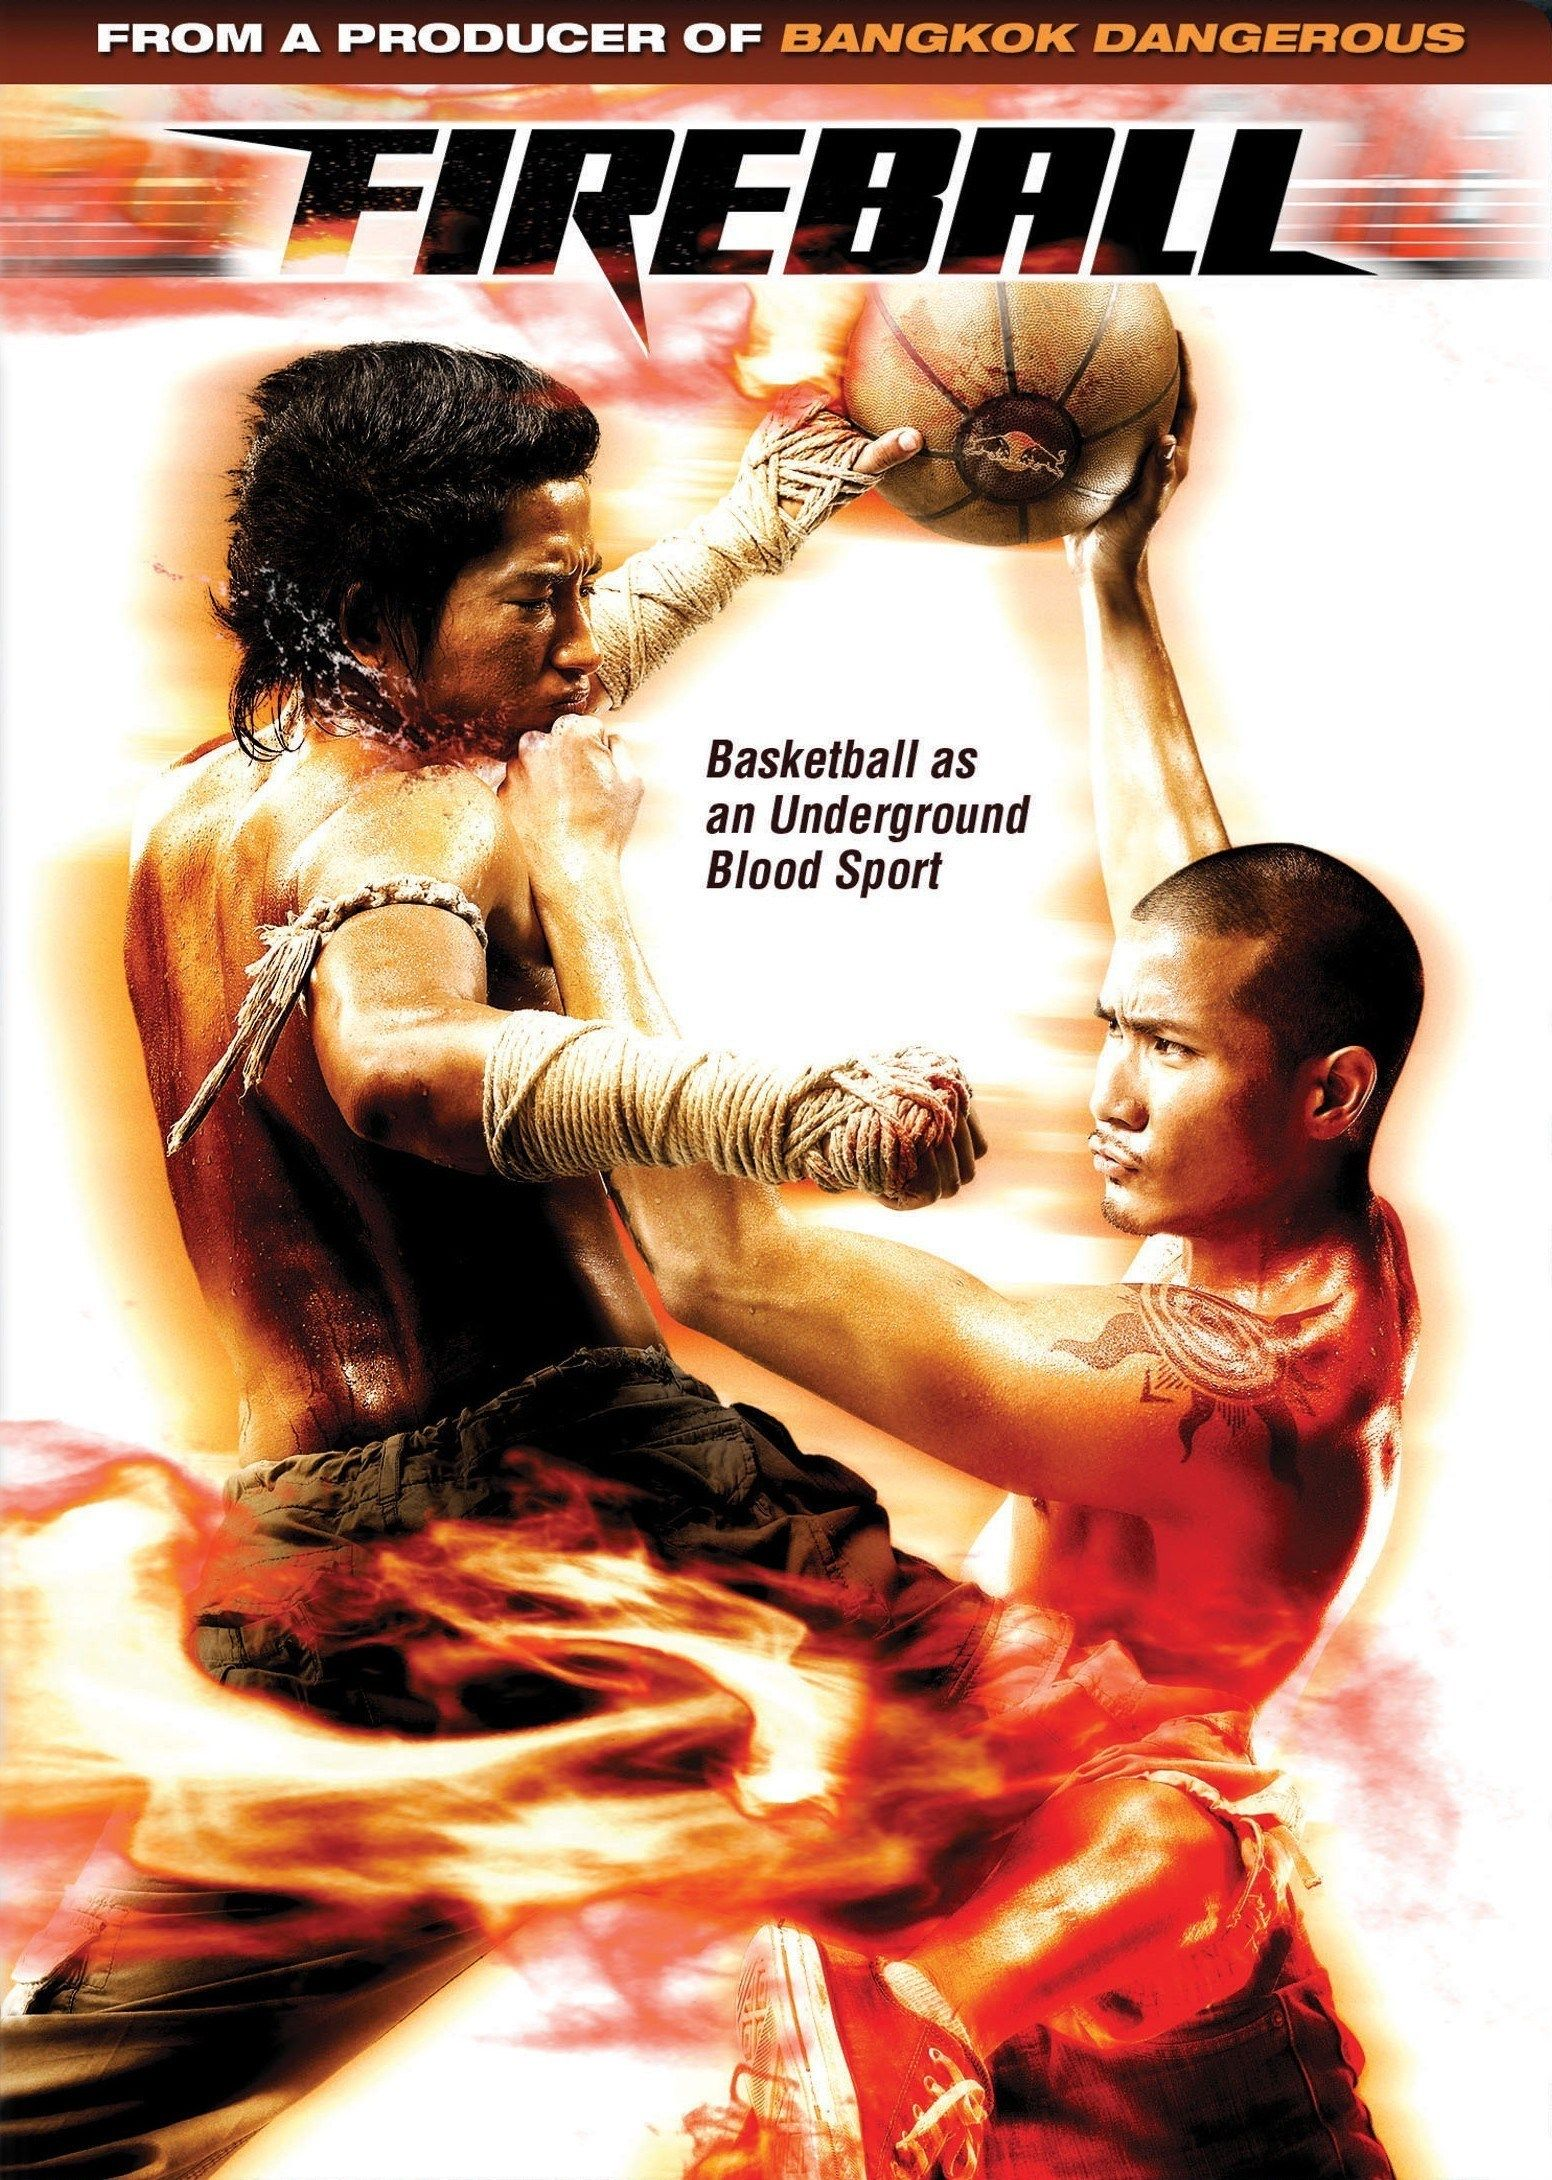 Download Film Thailand Fireball Subtitle Indonesia,Download Film